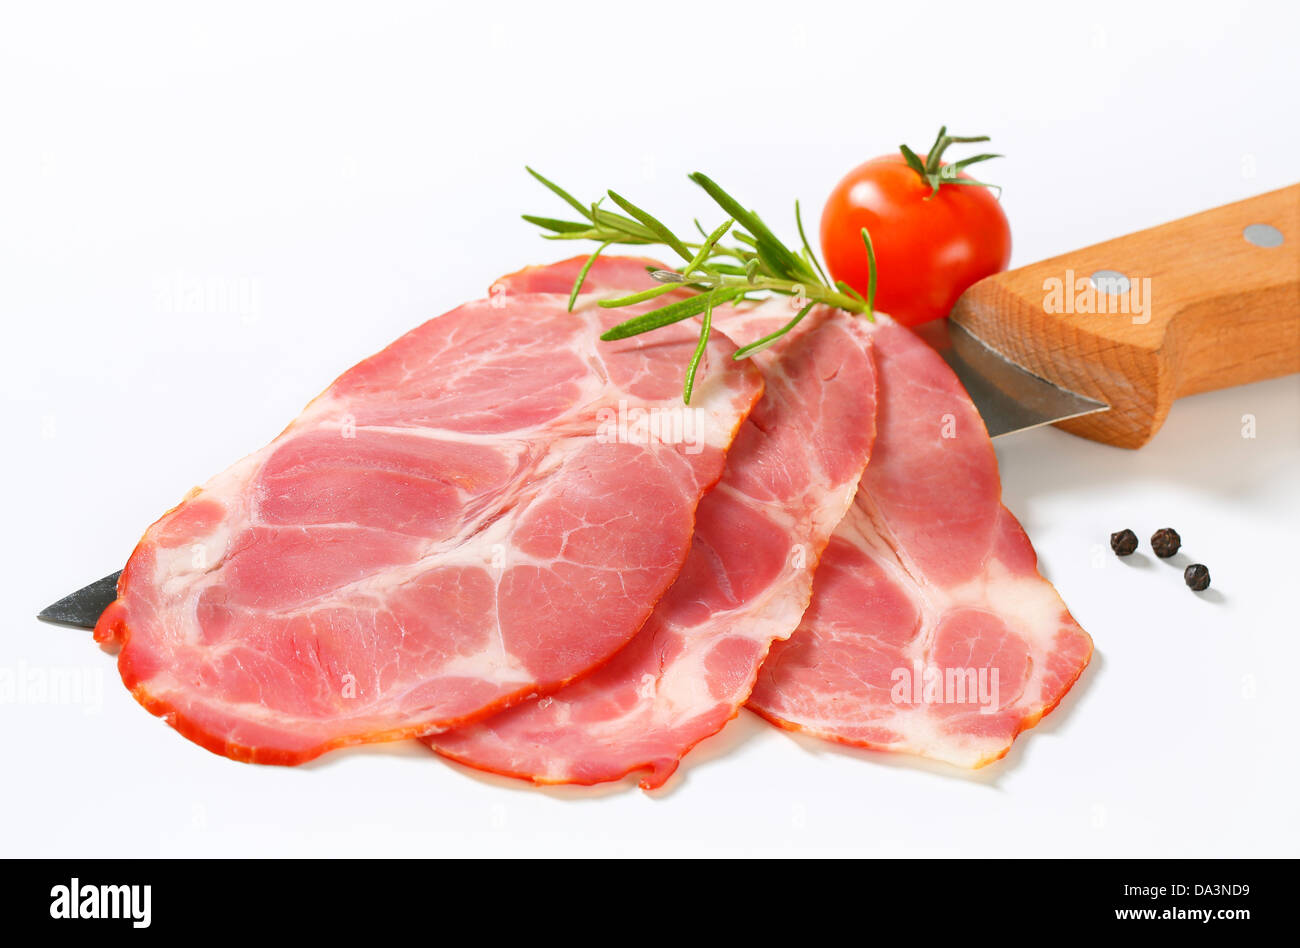 Thin slices of smoked pork on knife Stock Photo